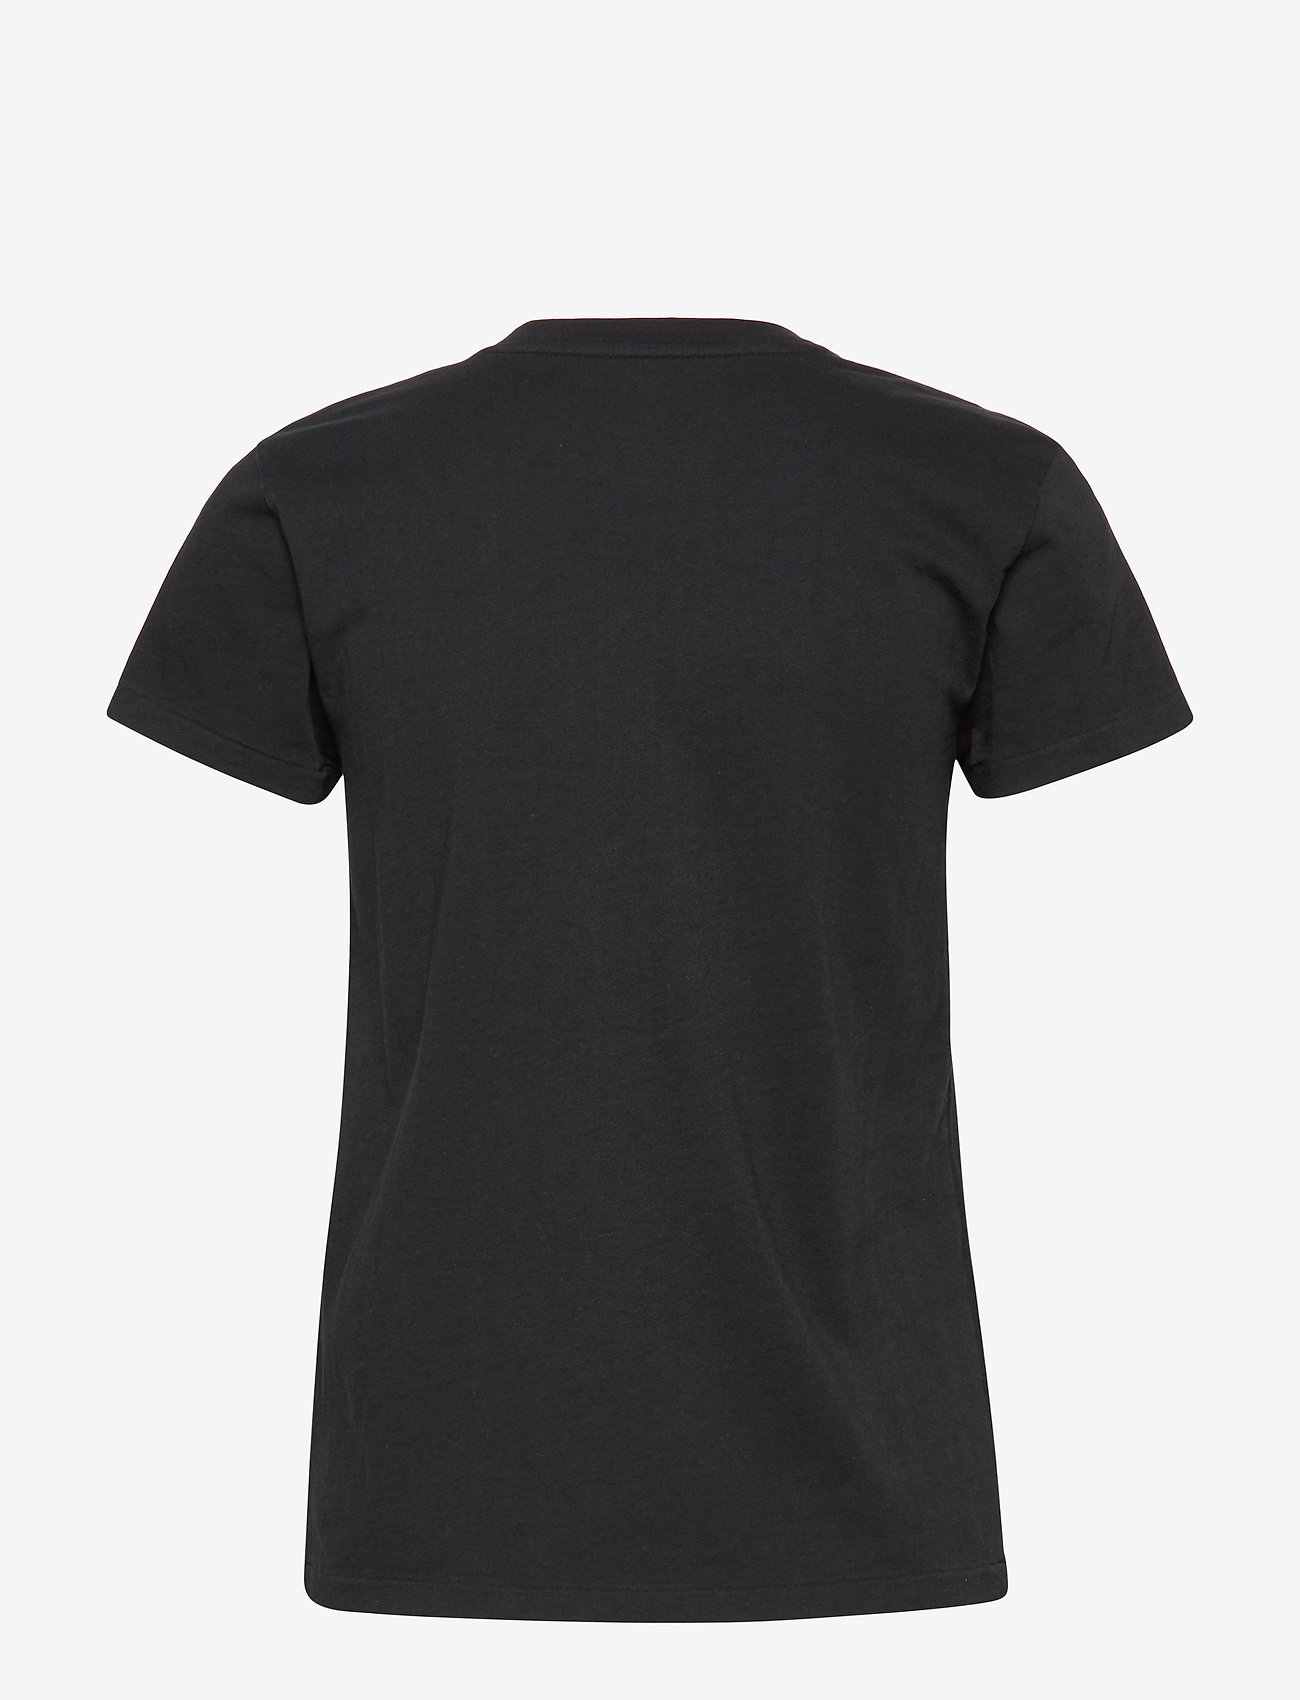 Polo Ralph Lauren Polo Cotton Tee - T-shirts & Tops POLO BLACK